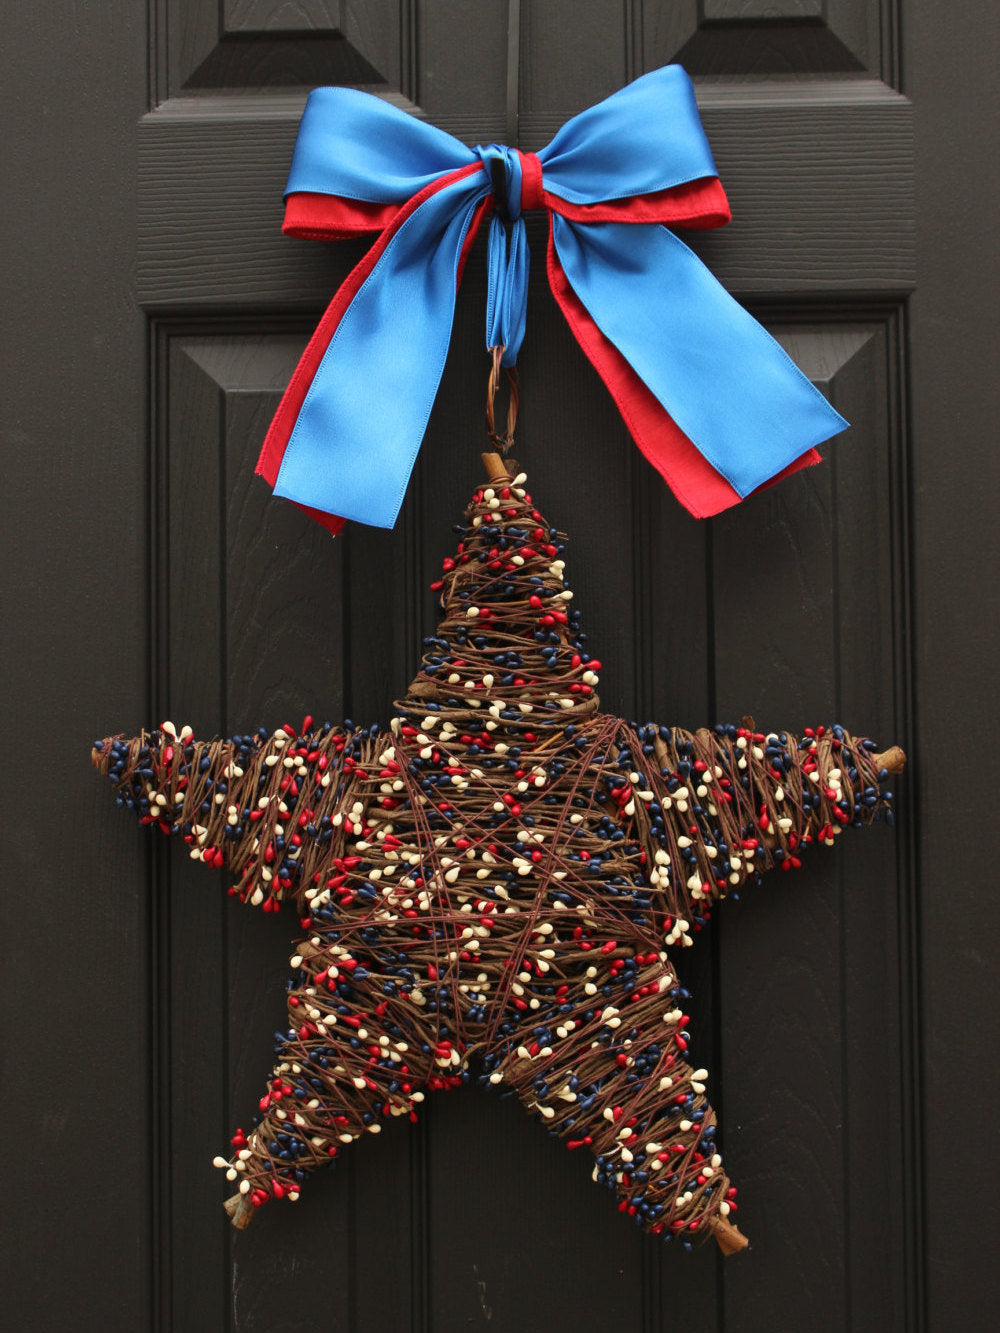 Red White and Blue Wreath - Patriotic Wreath - Star Wreath  - July 4th Wreath